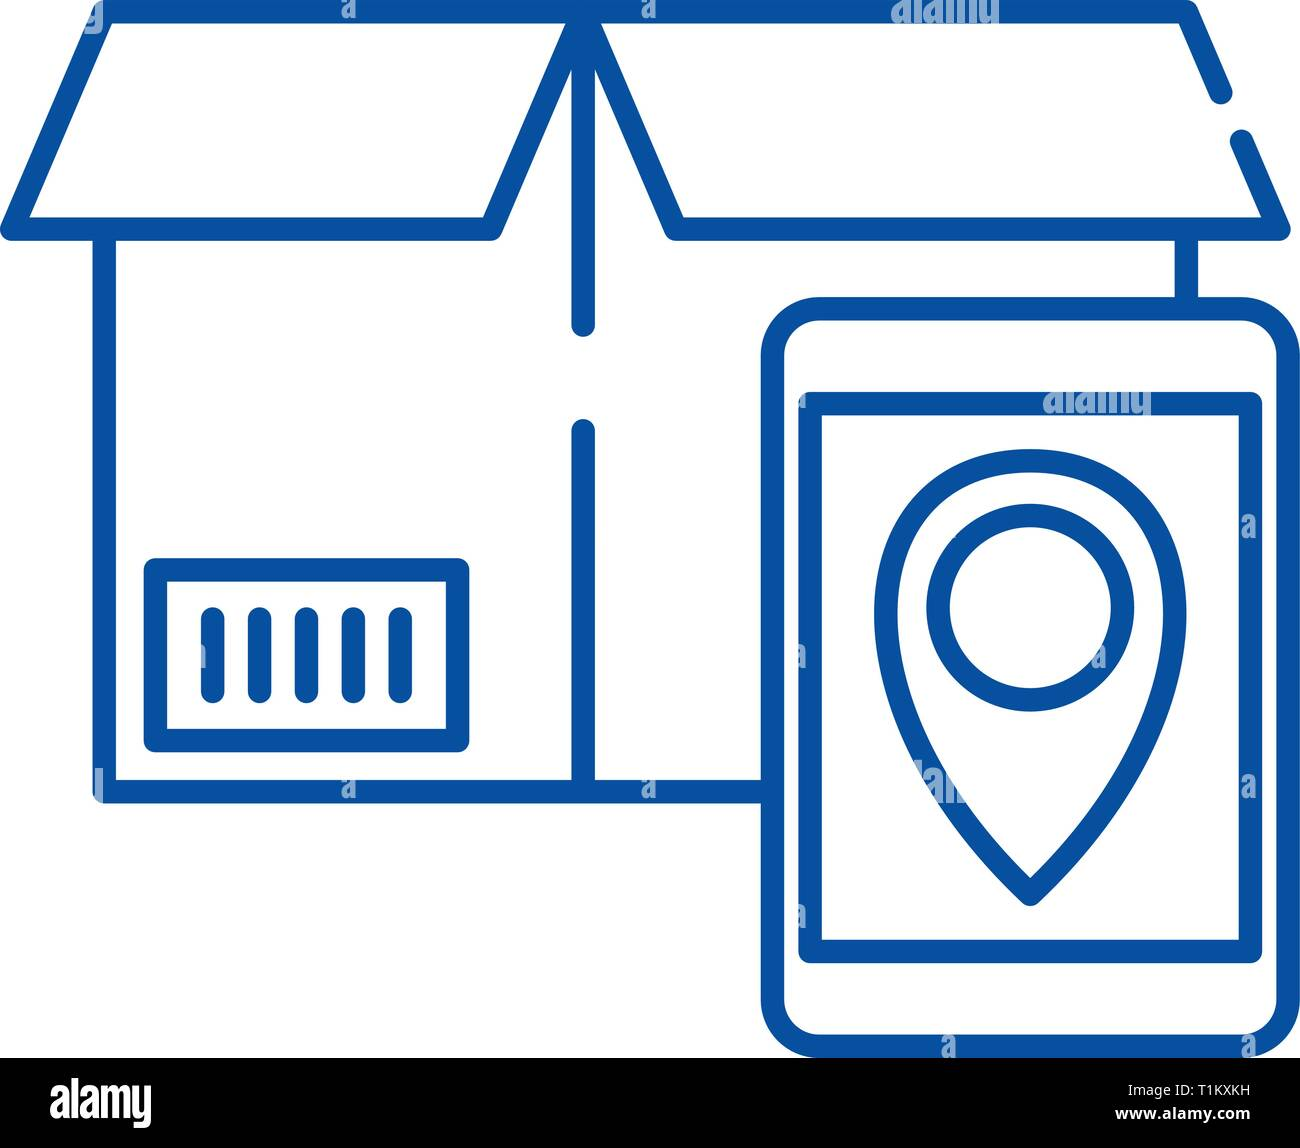 Tracking number line icon concept. Tracking number flat  vector symbol, sign, outline illustration. Stock Vector